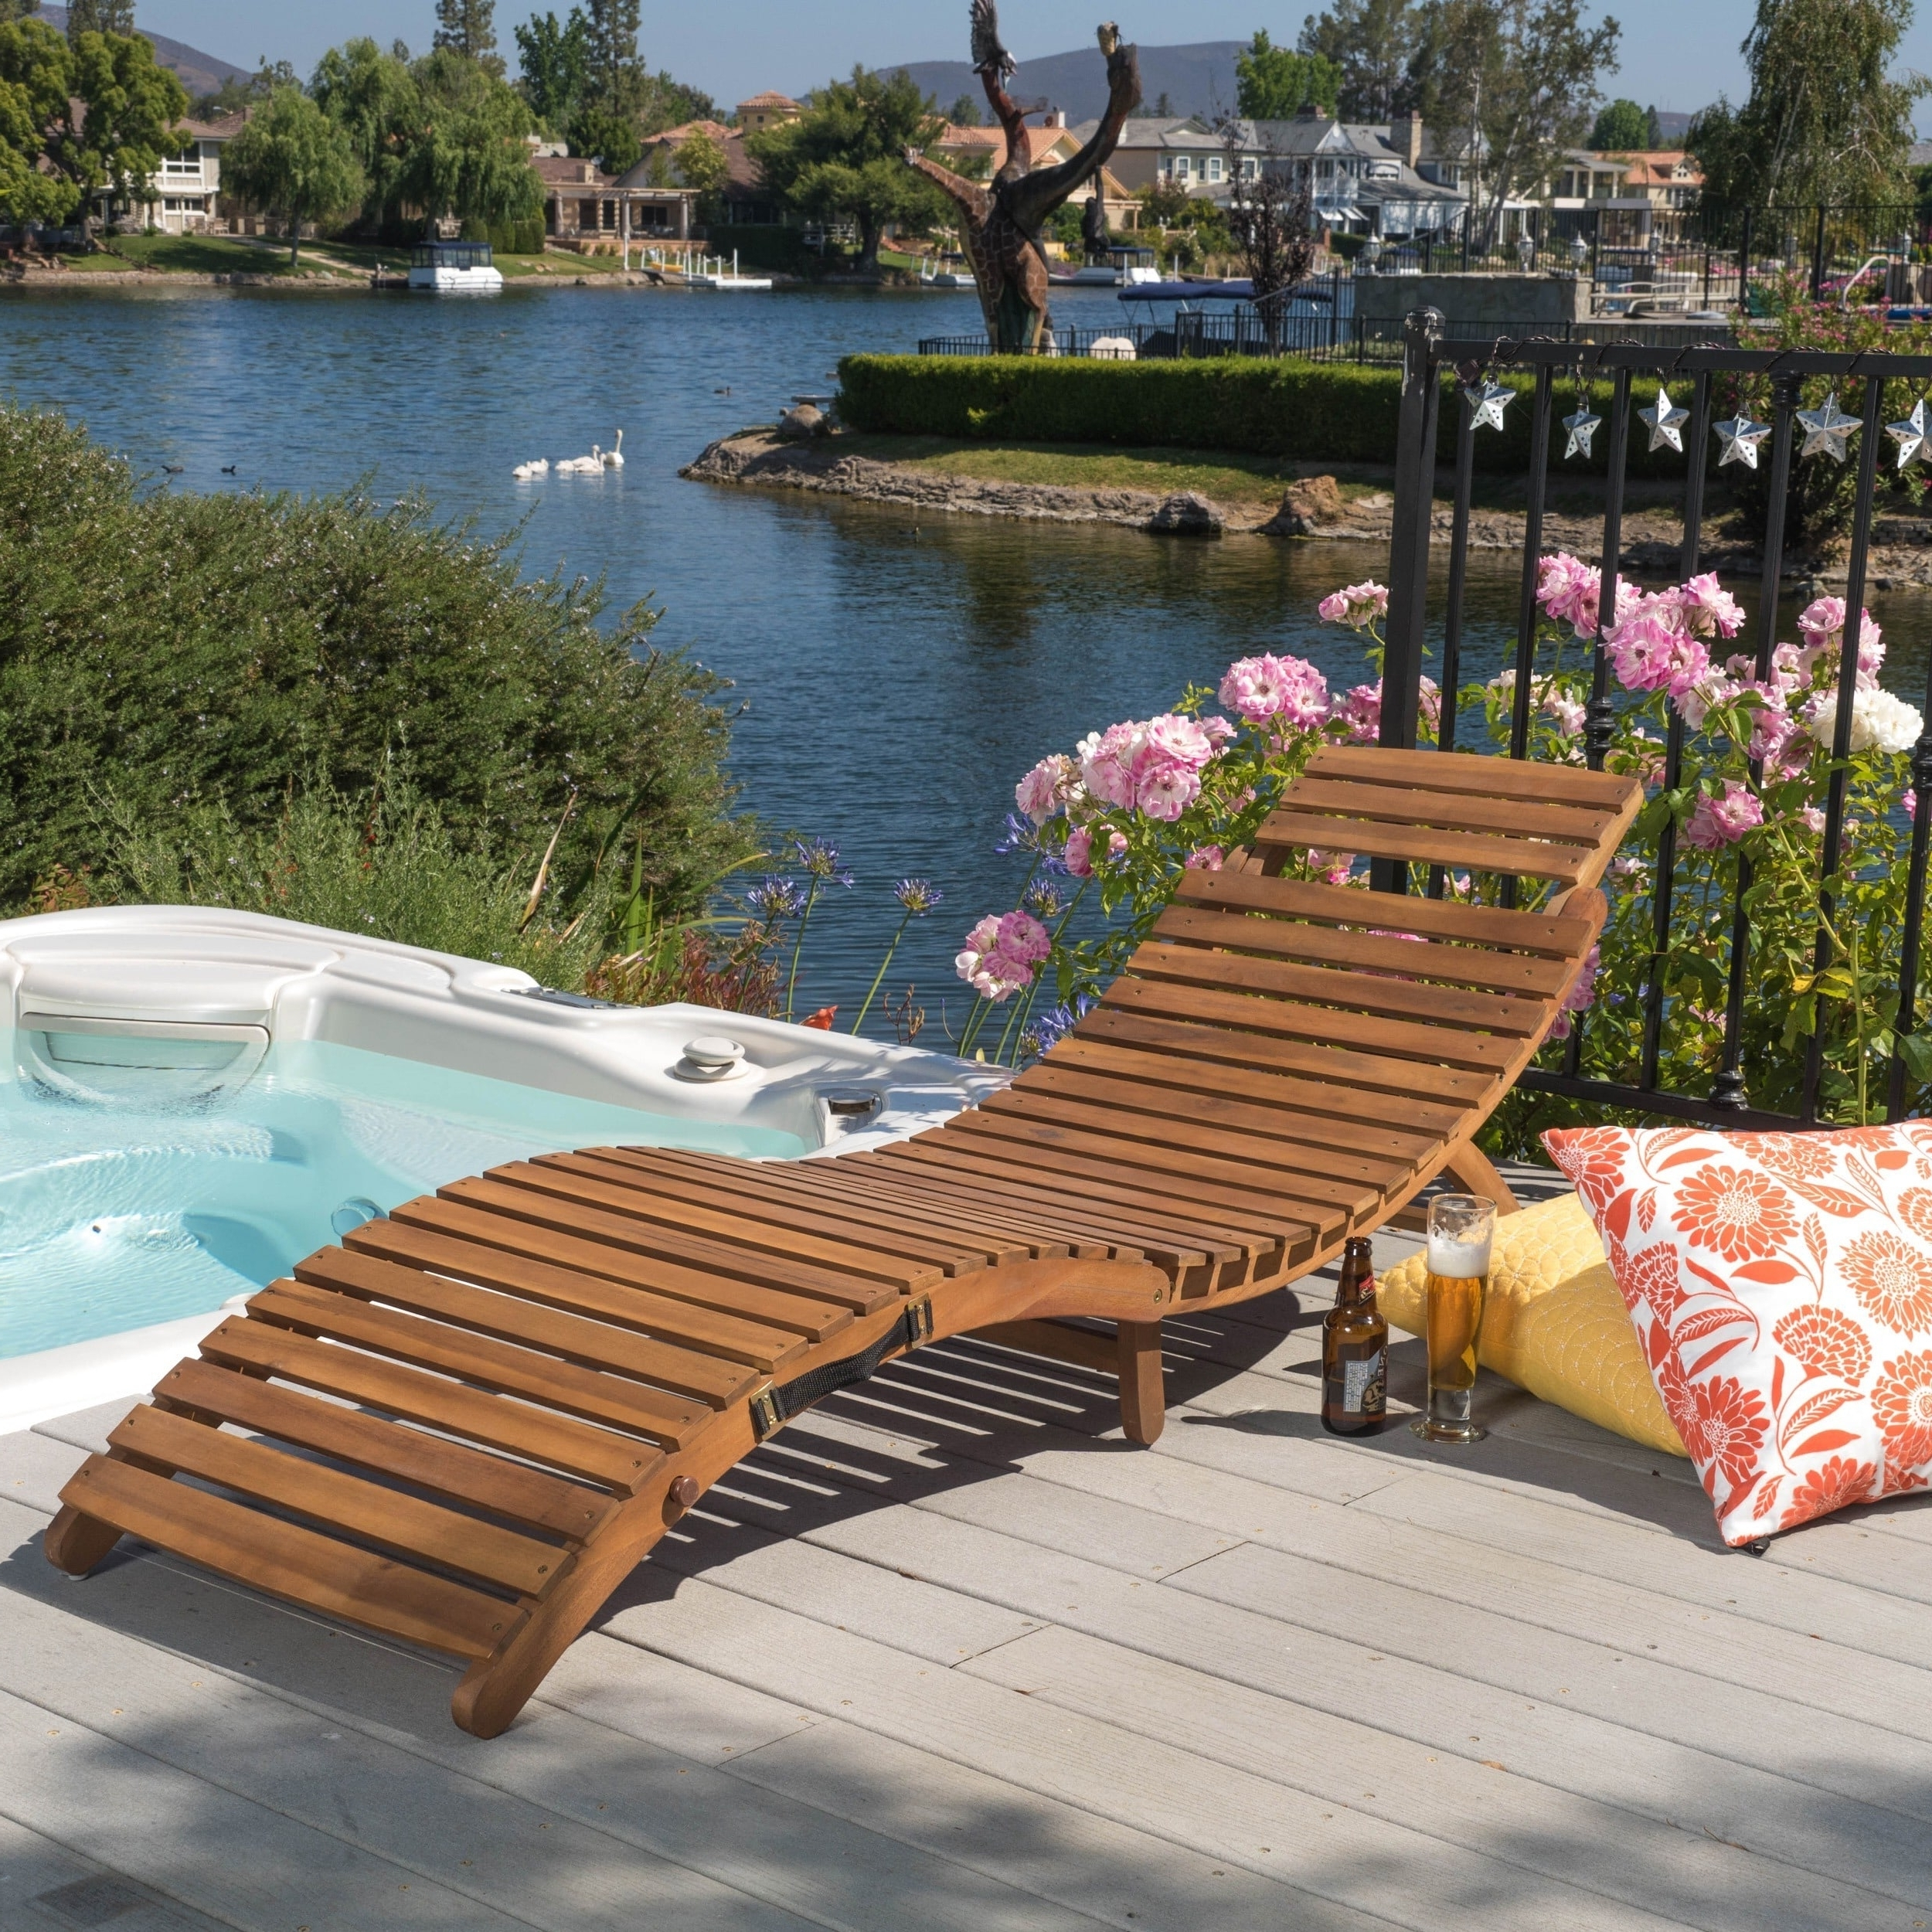 Lahaina Outdoor Acacia Wood Chaise Loungechristopher Knight Regarding 2018 Overstock Outdoor Chaise Lounge Chairs (View 5 of 15)